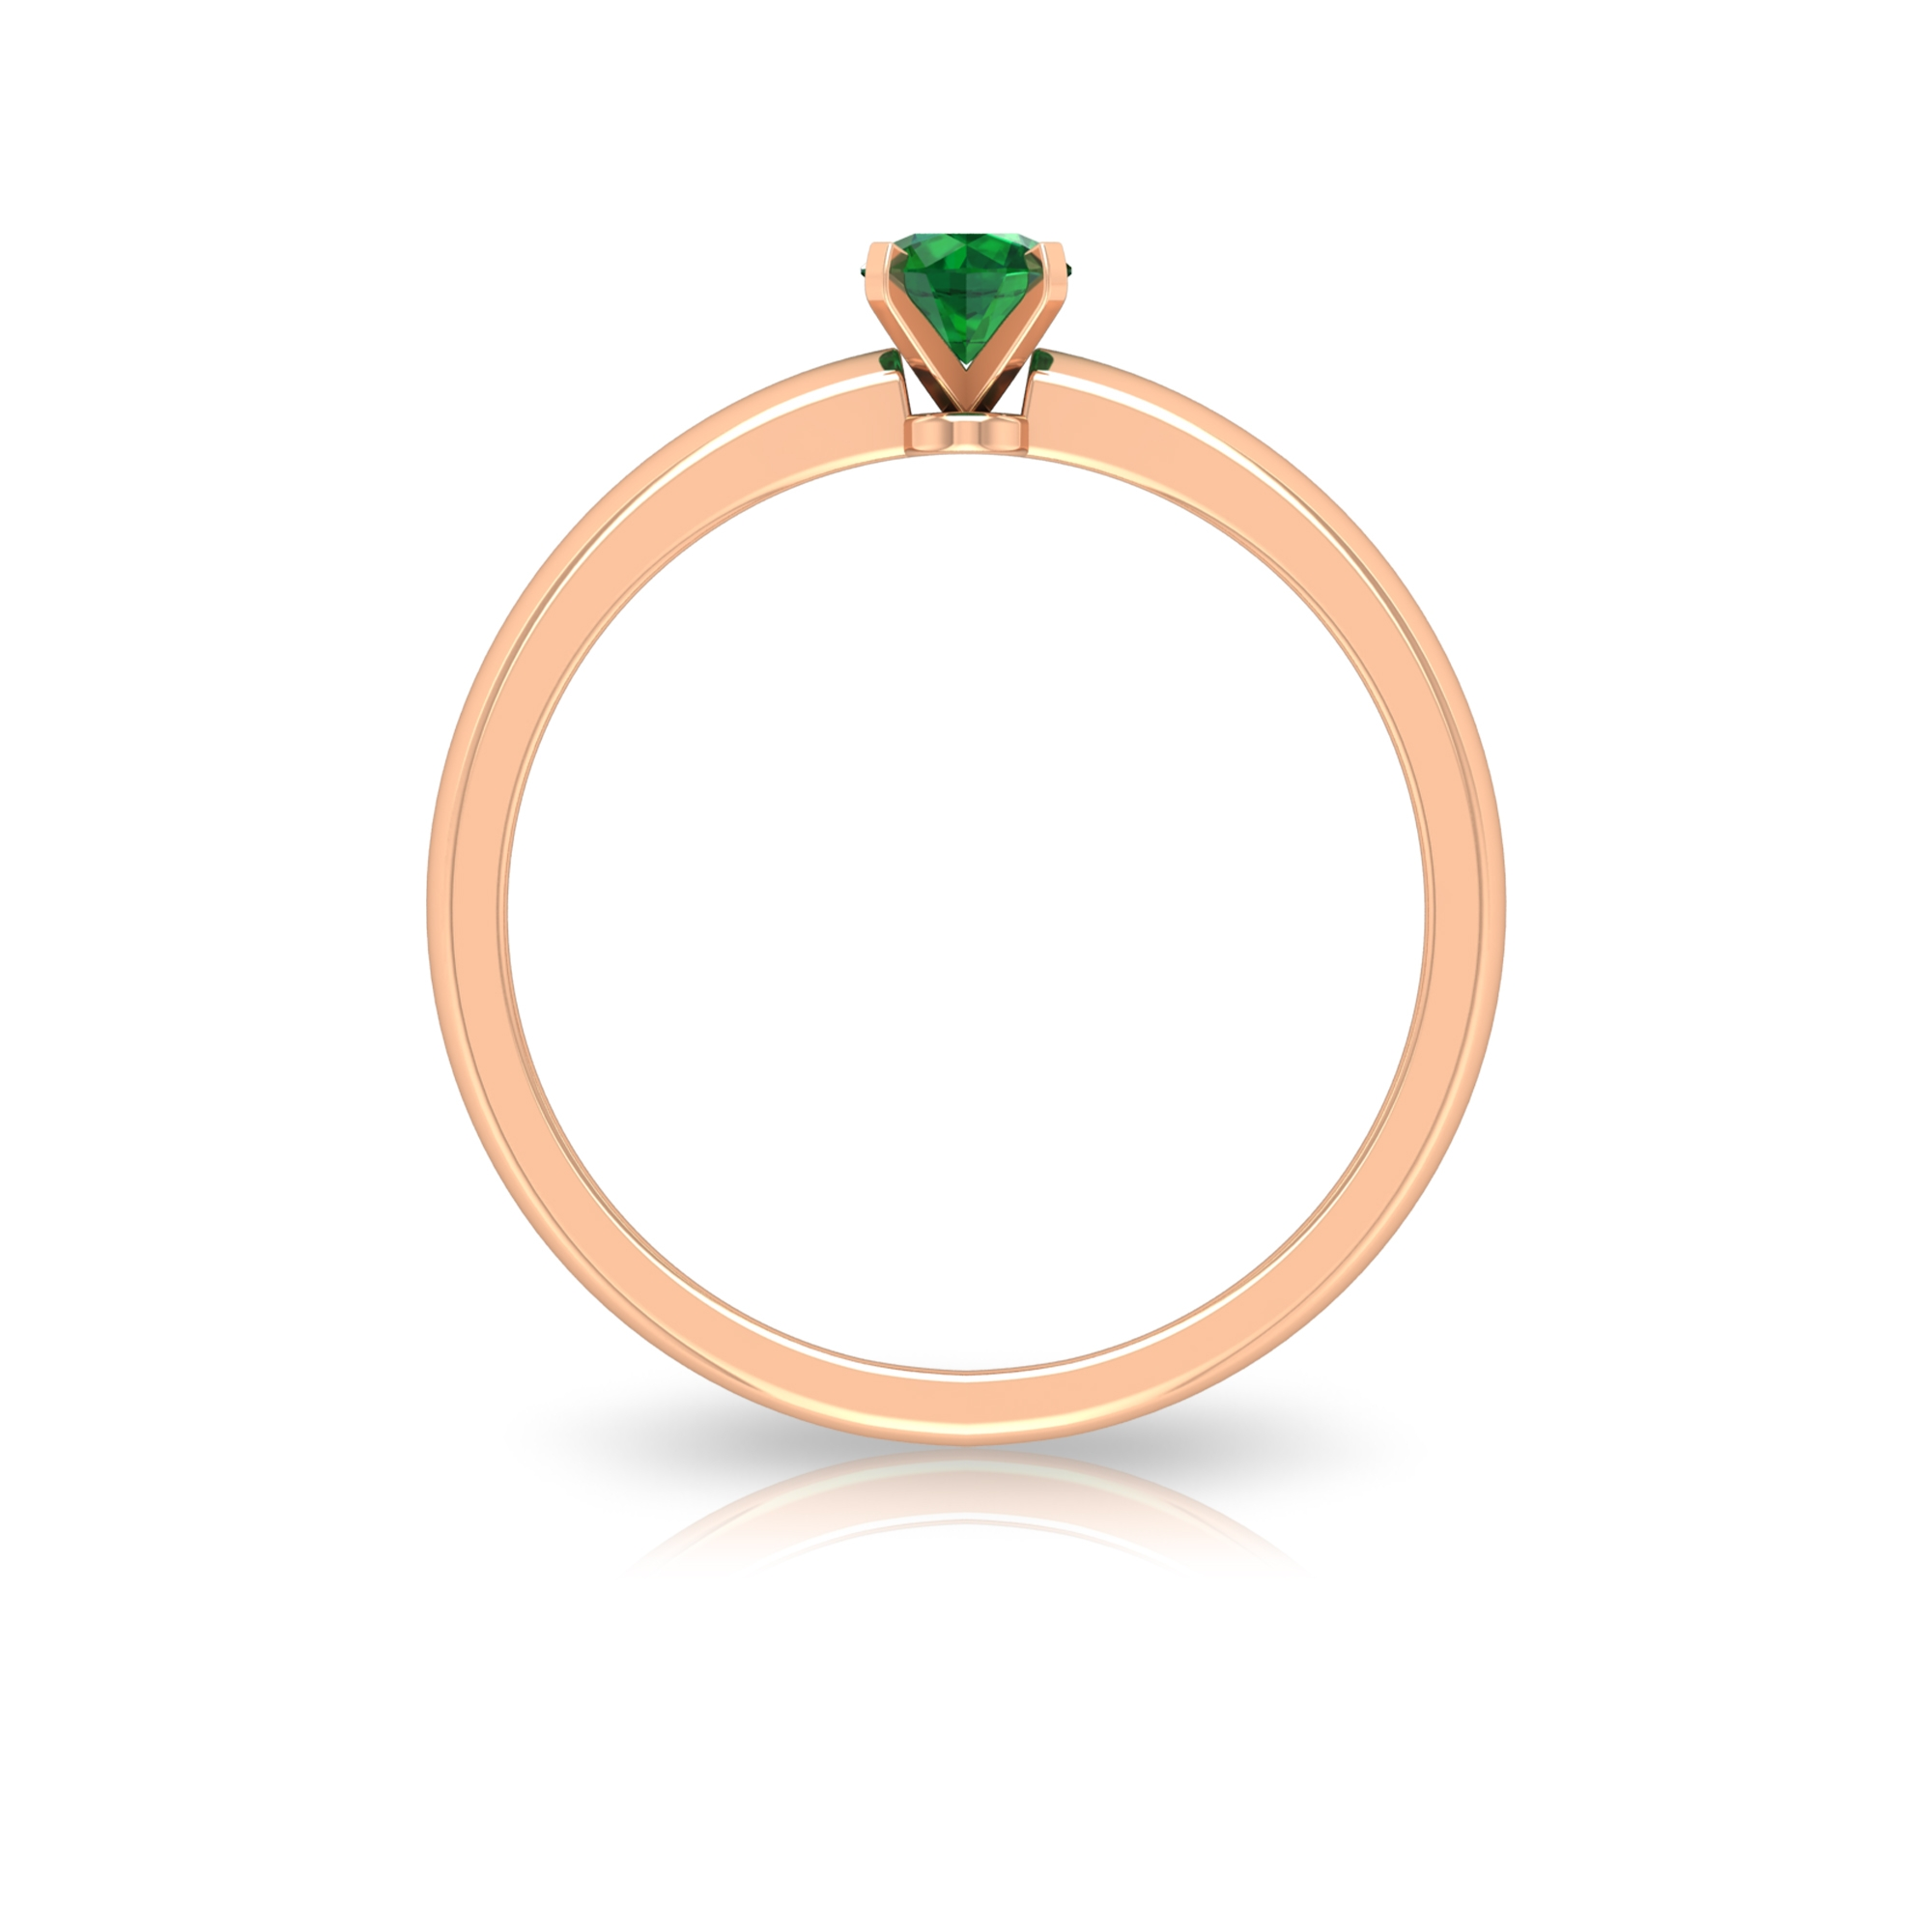 4 MM Round Cut Emerald Solitaire Ring in Peg Head Setting